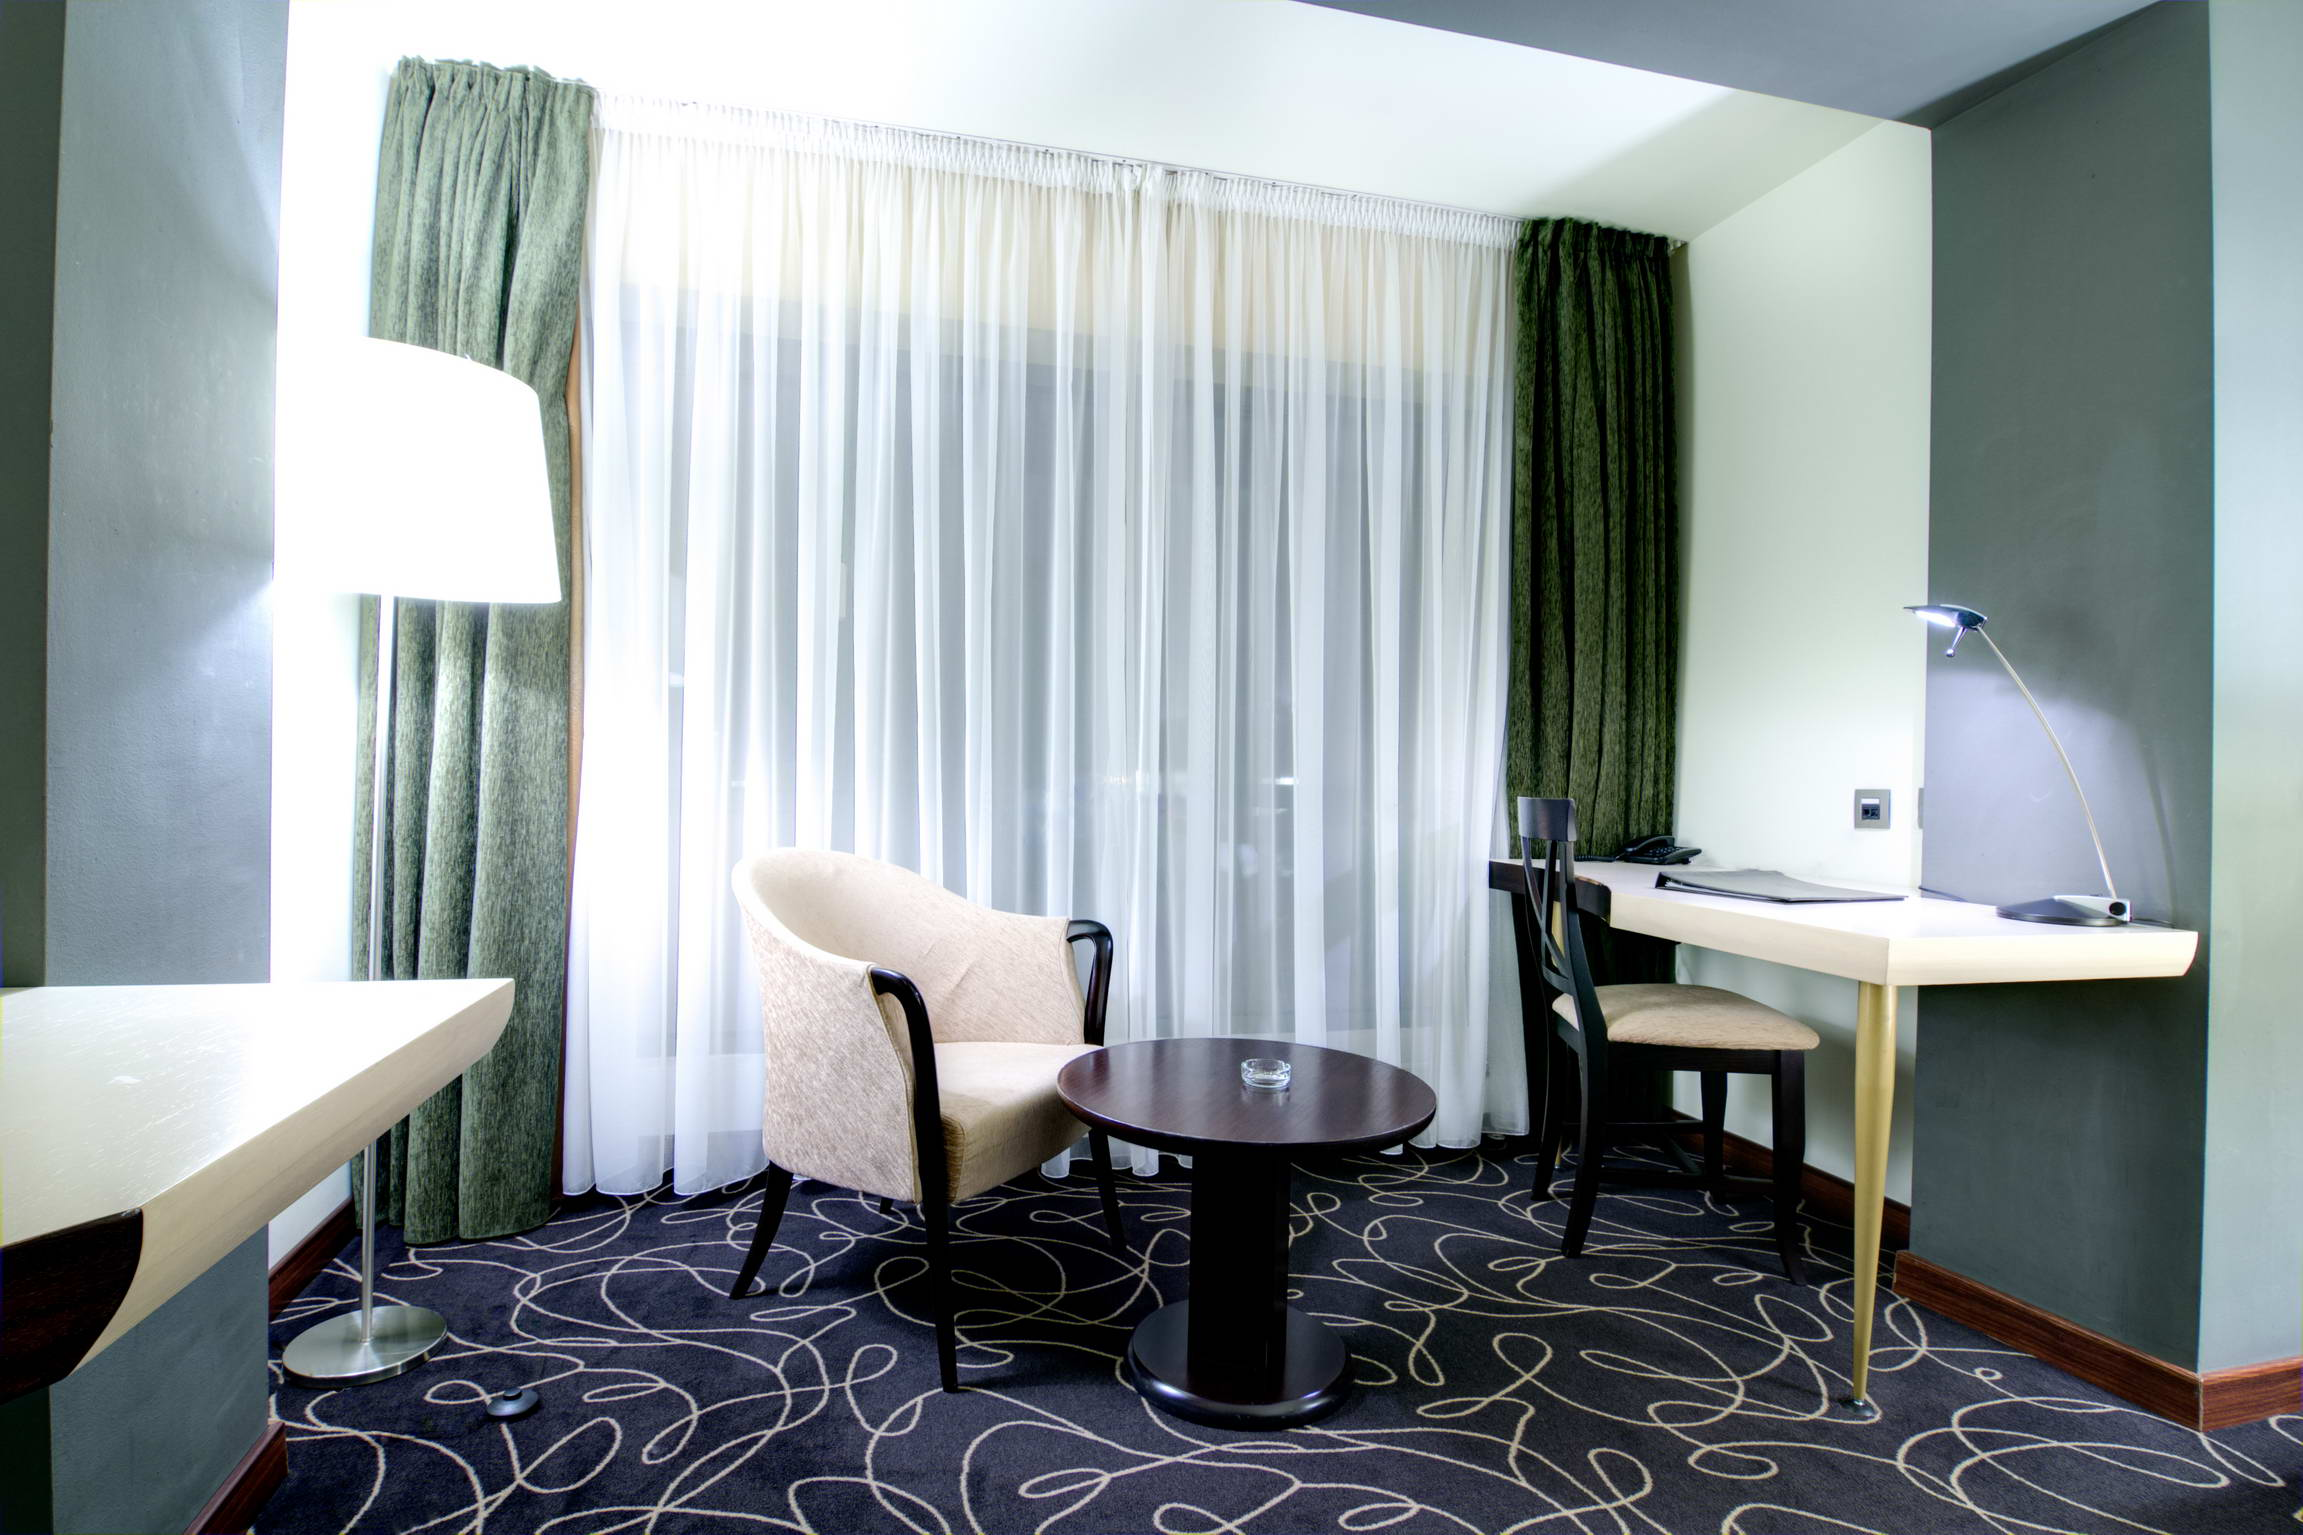 Standard Room with panoramic view